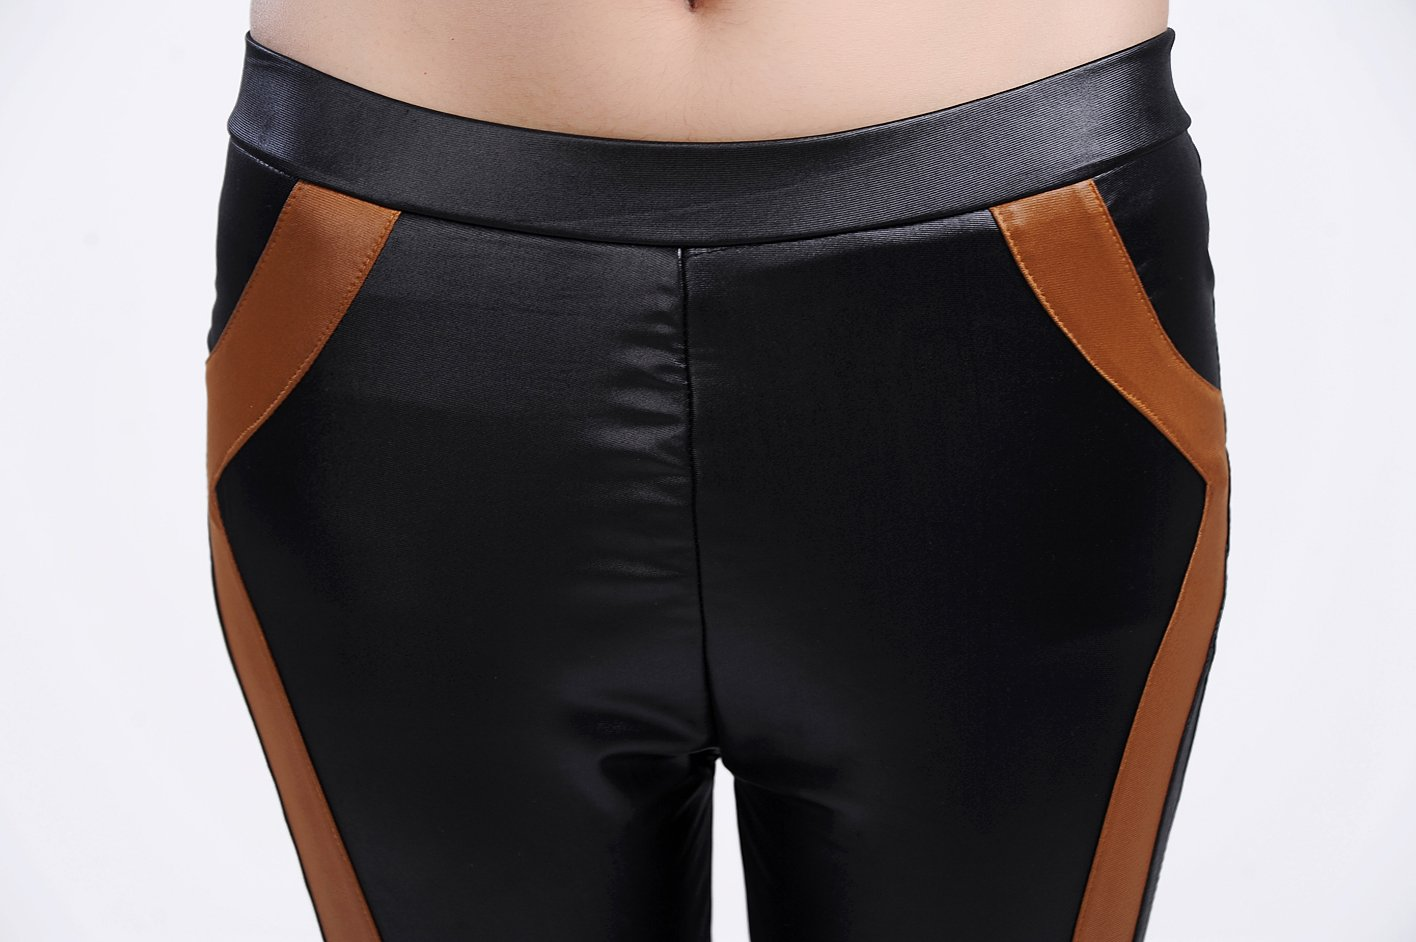 Black Faux Leather Look Leggings with Brown Stripe